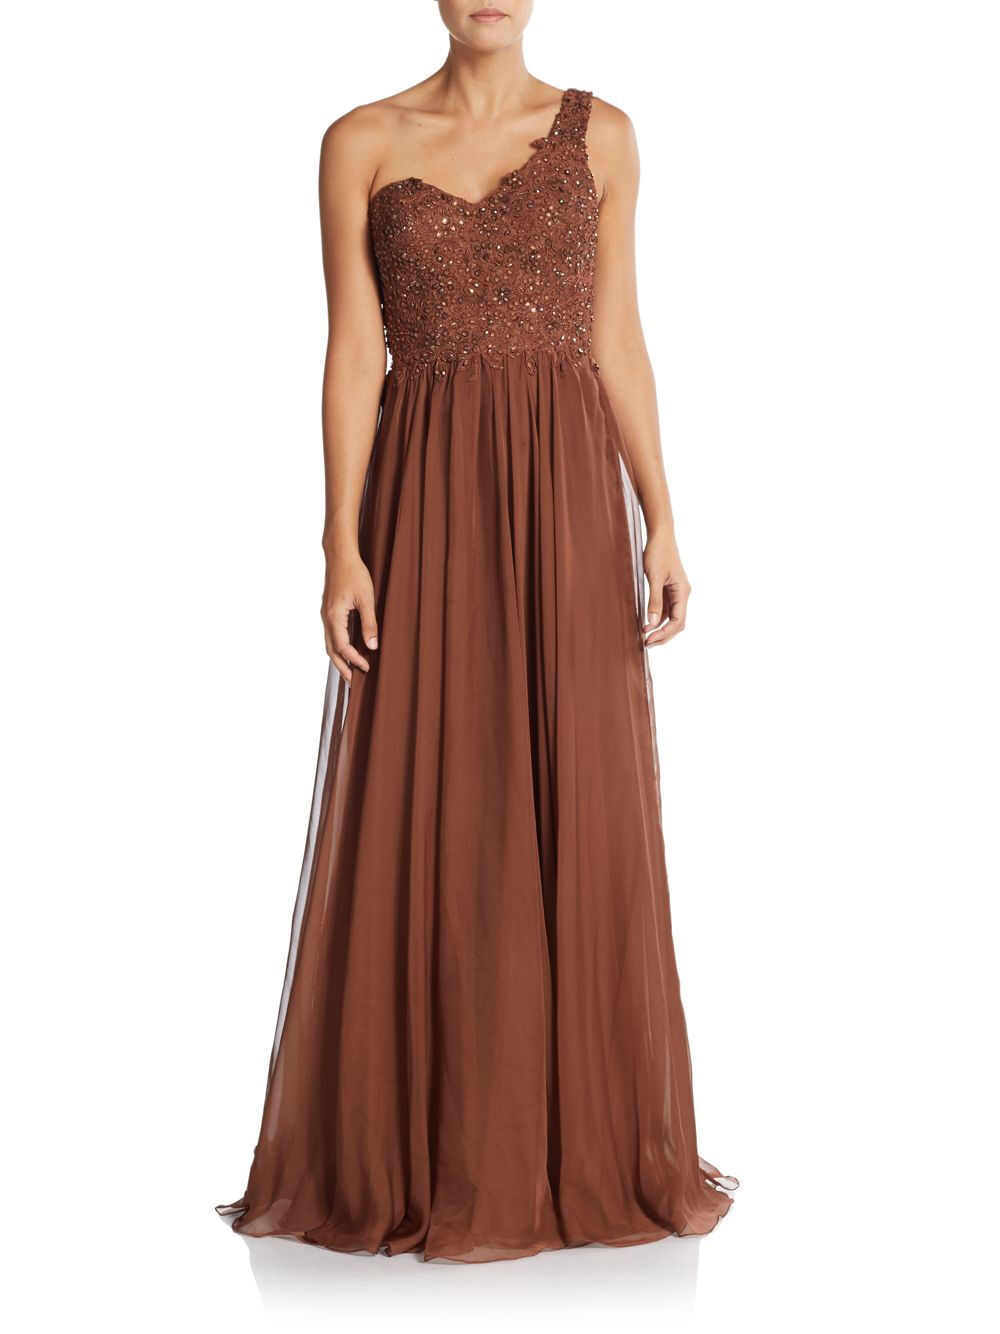 La Femme Brown Lace Beaded One Shoulder Gown Size 2  605